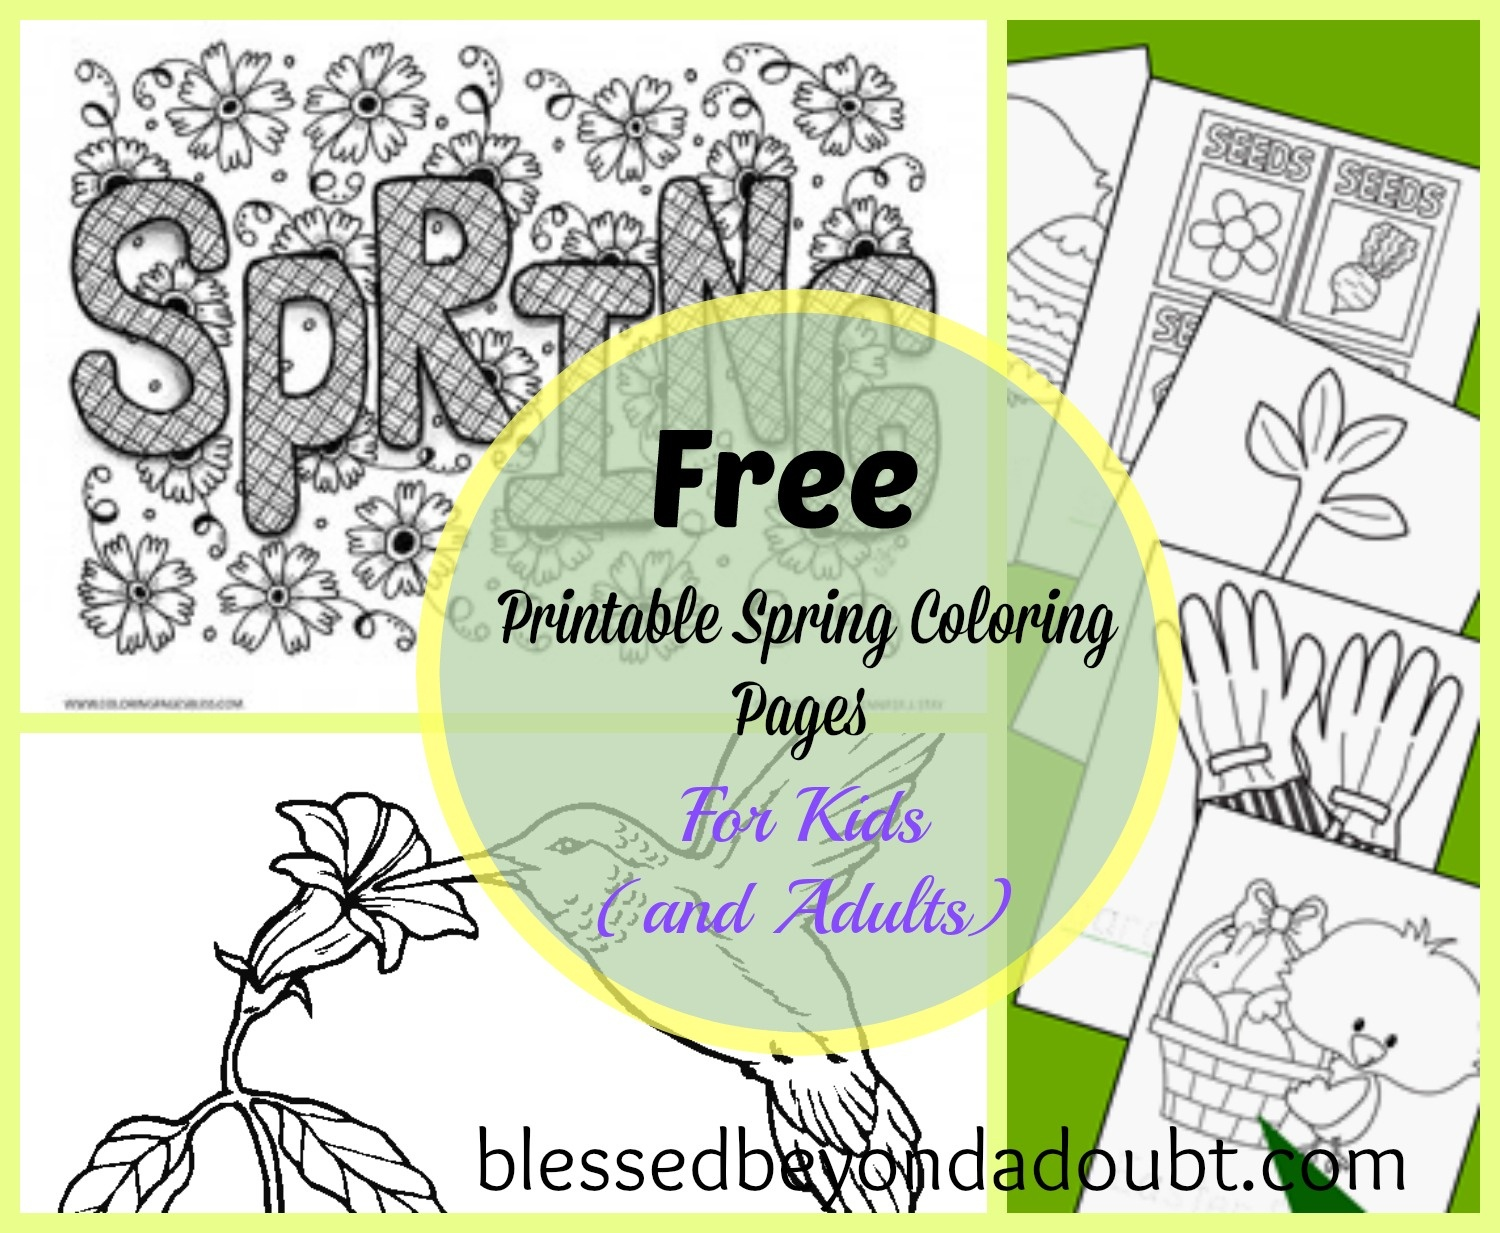 20 + Free Printable Spring Coloring Sheets For Kids (And Adults - Free Printable Spring Coloring Pages For Adults